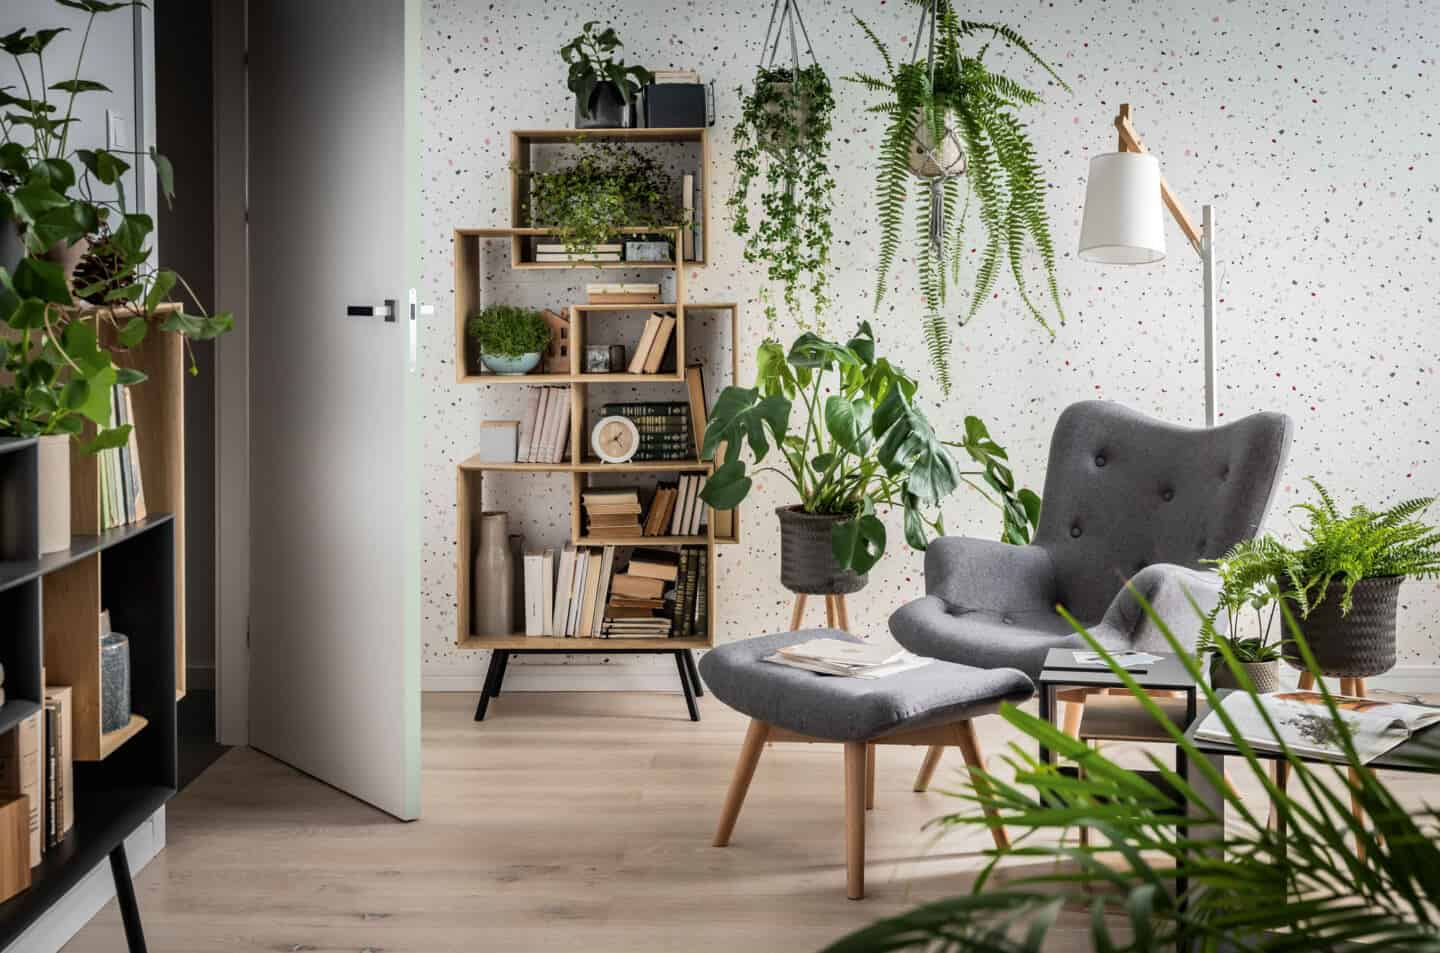 Bringing Natural Elements into the Home. Living room and  featuring a grey chair and footstool surrounded by plants.